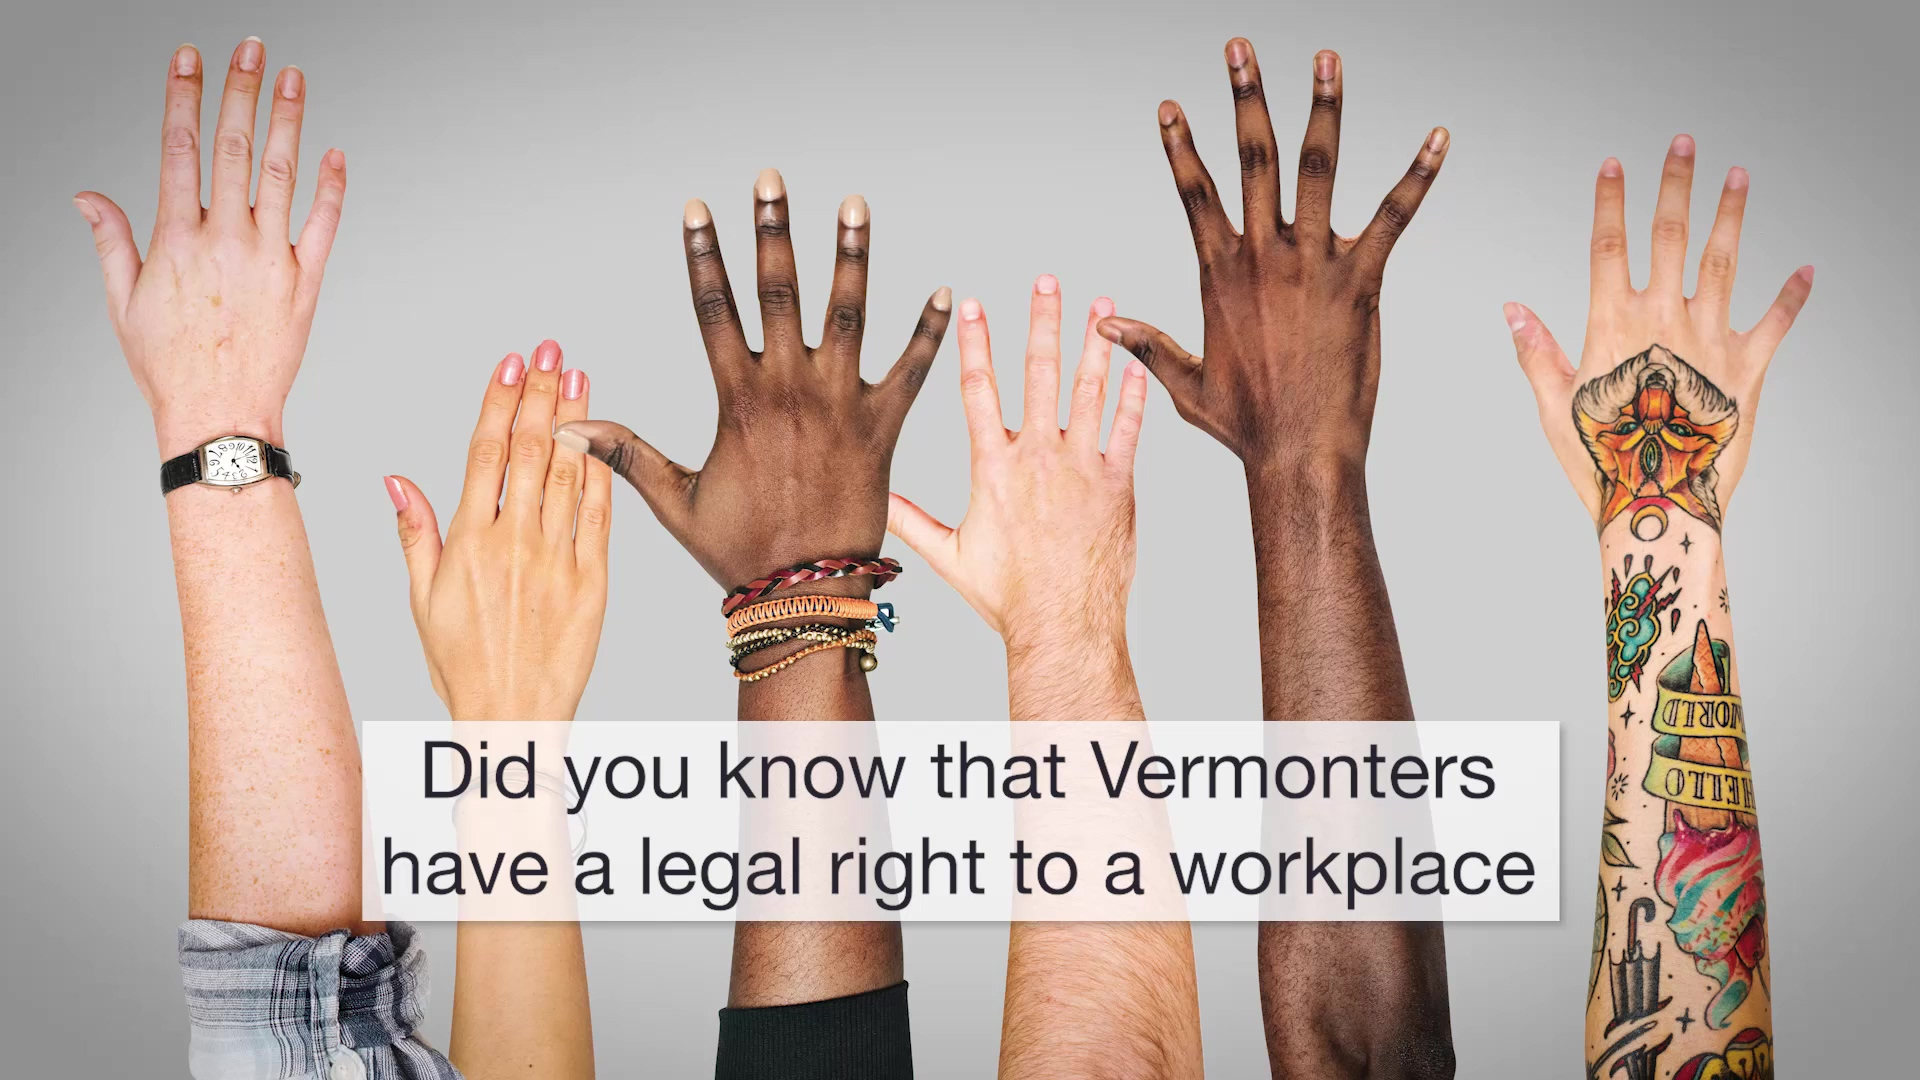 VCW_W4A-Vermonters-191108_1